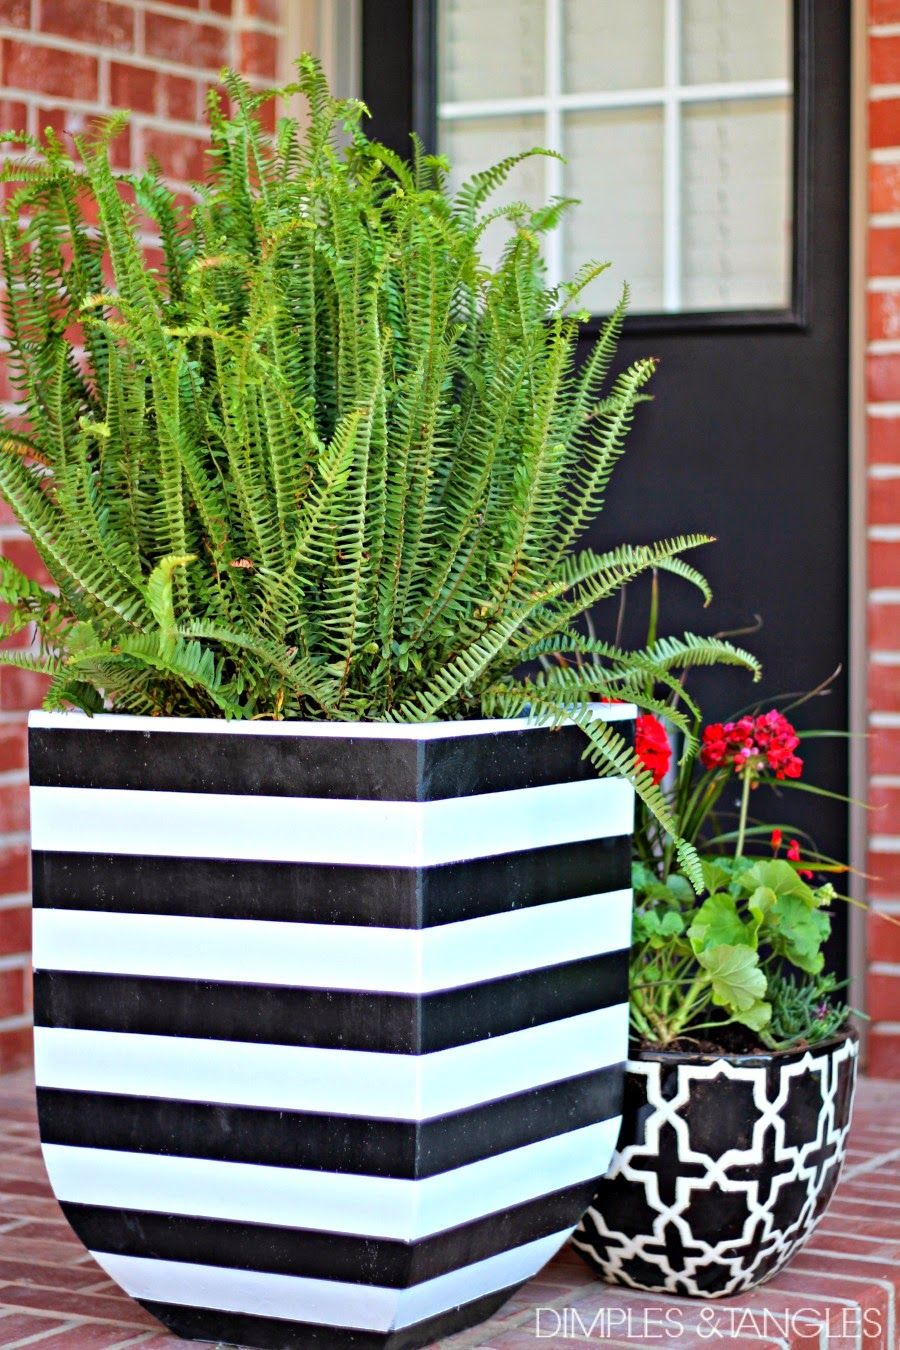 Diy black and white striped pots